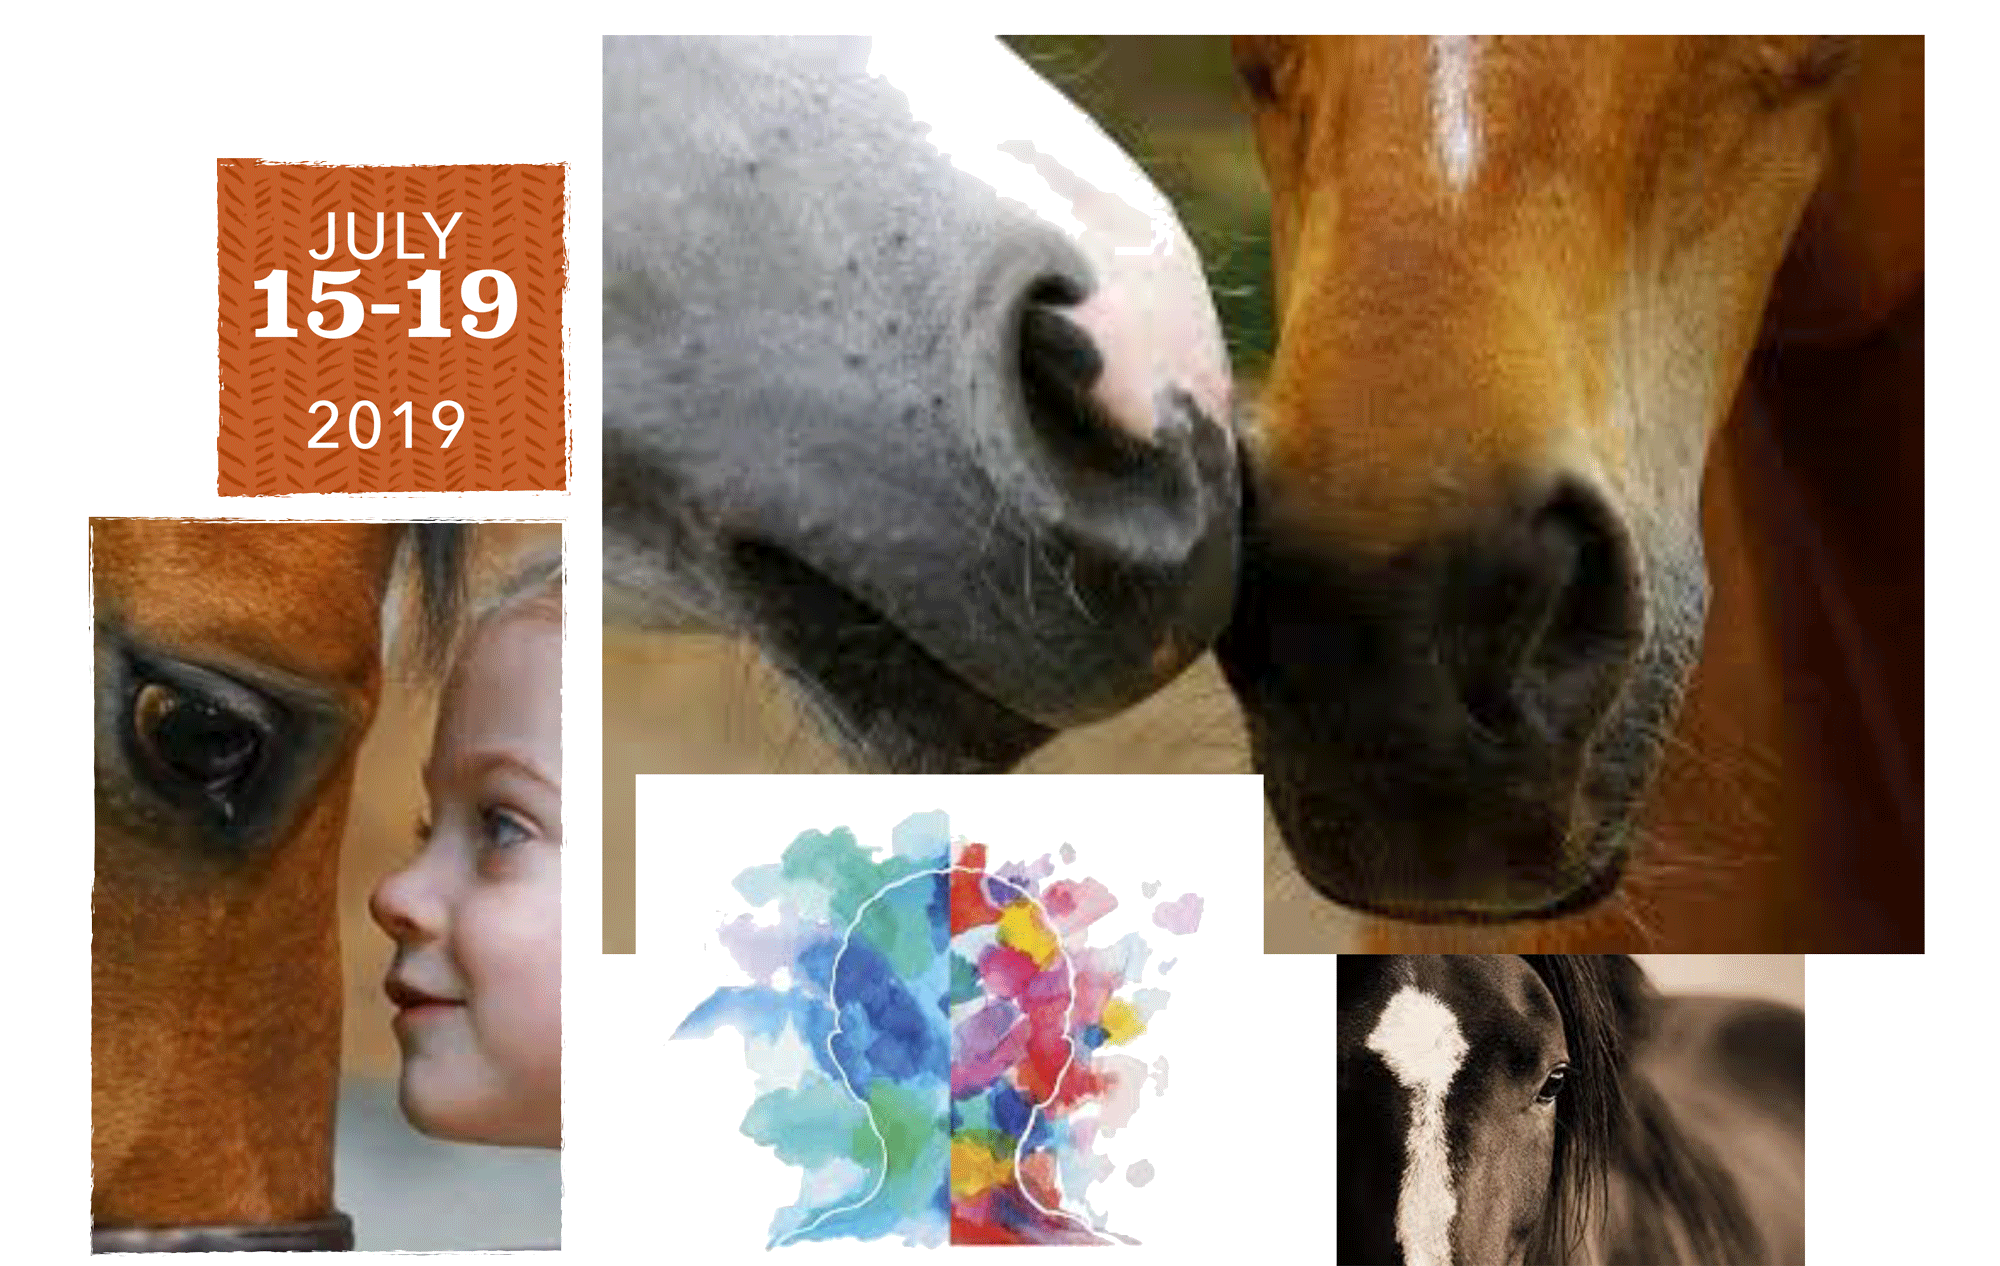 MINDCAP EQUESTRIAN DAY CAMP - JULY 15-19, 2019